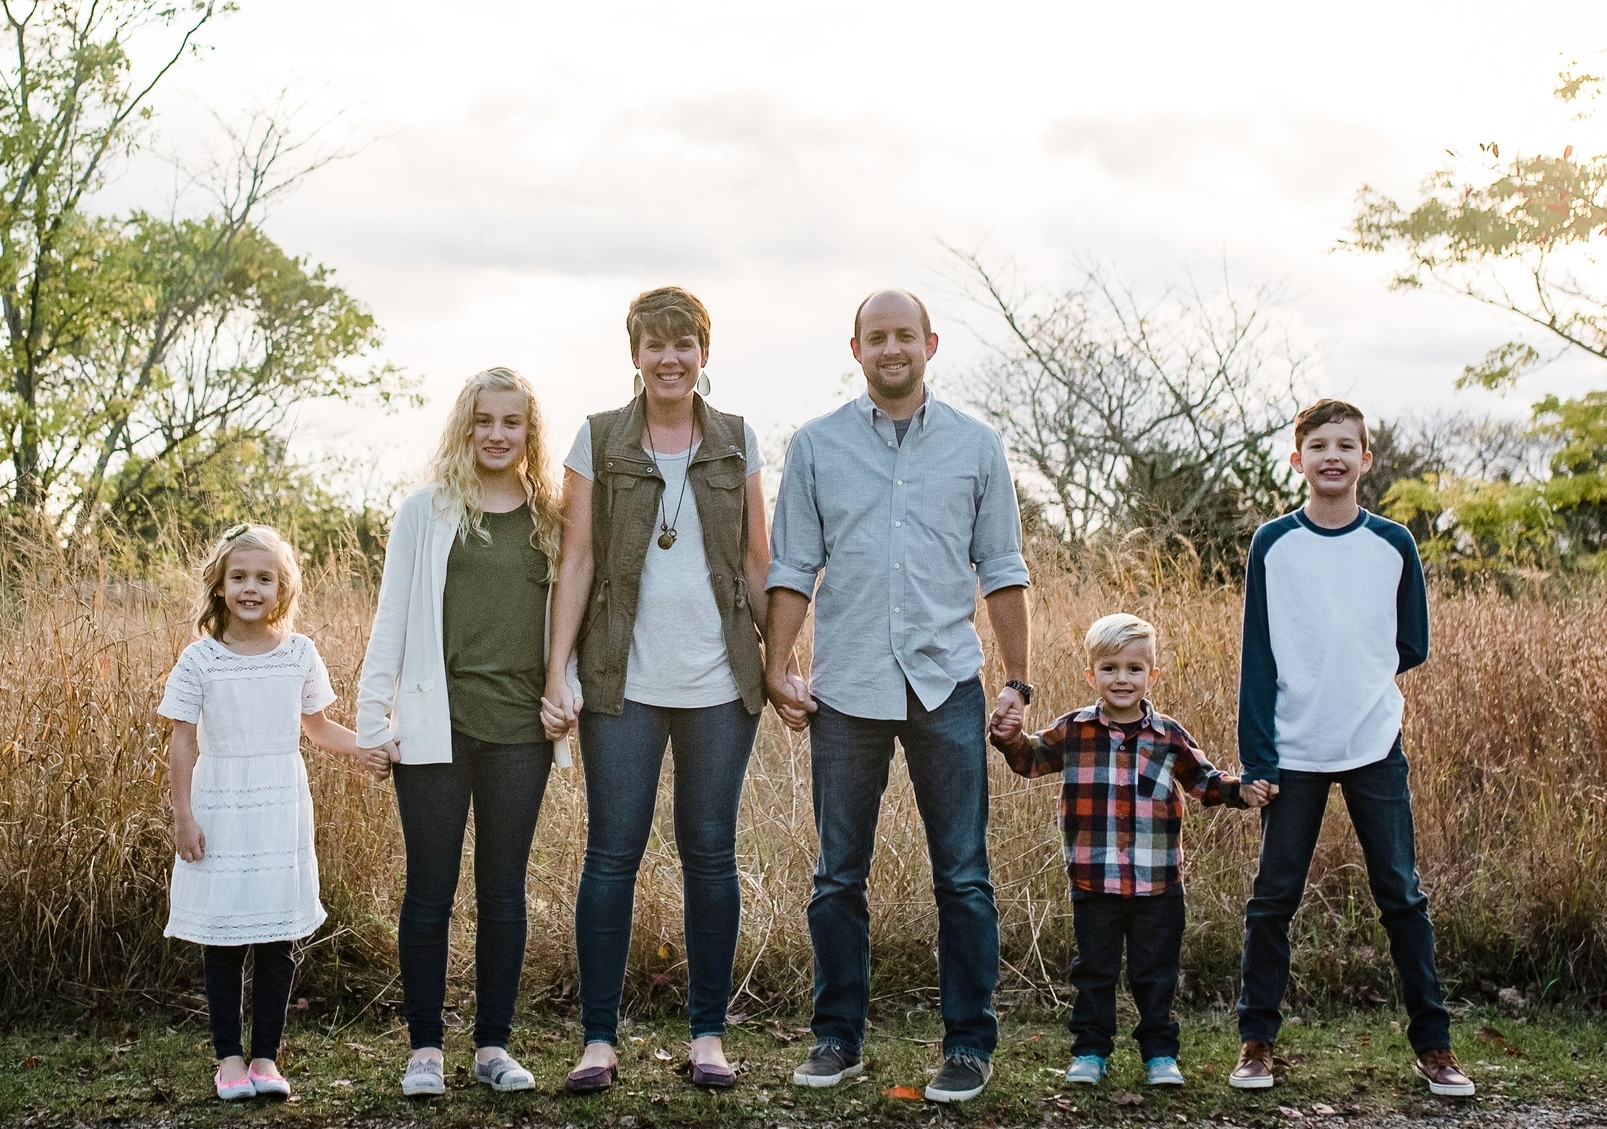 Hi! We're Jason and Jaime...and these are our 4 kiddos-Reagan, Bryce, Ruthie, and Bennett!    We are so excited to be a part of the Life West team and what God is doing in Allendale!  You will find me, Jaime, loving and engaging your children in our kids ministry. Jason, with his outgoing personality, will be around the church greeting you, making you laugh, and offering you the best welcome.    As a family, we love serving in the local church.  We look forward to joining with you to raise a generation passionate for Jesus and chasing after Him!  We can think of no greater legacy for our own children, and want to share that with the families we serve and do life with.  Please come introduce yourself when you see us around!  Contact me at:  jaimeh@lifewest.church